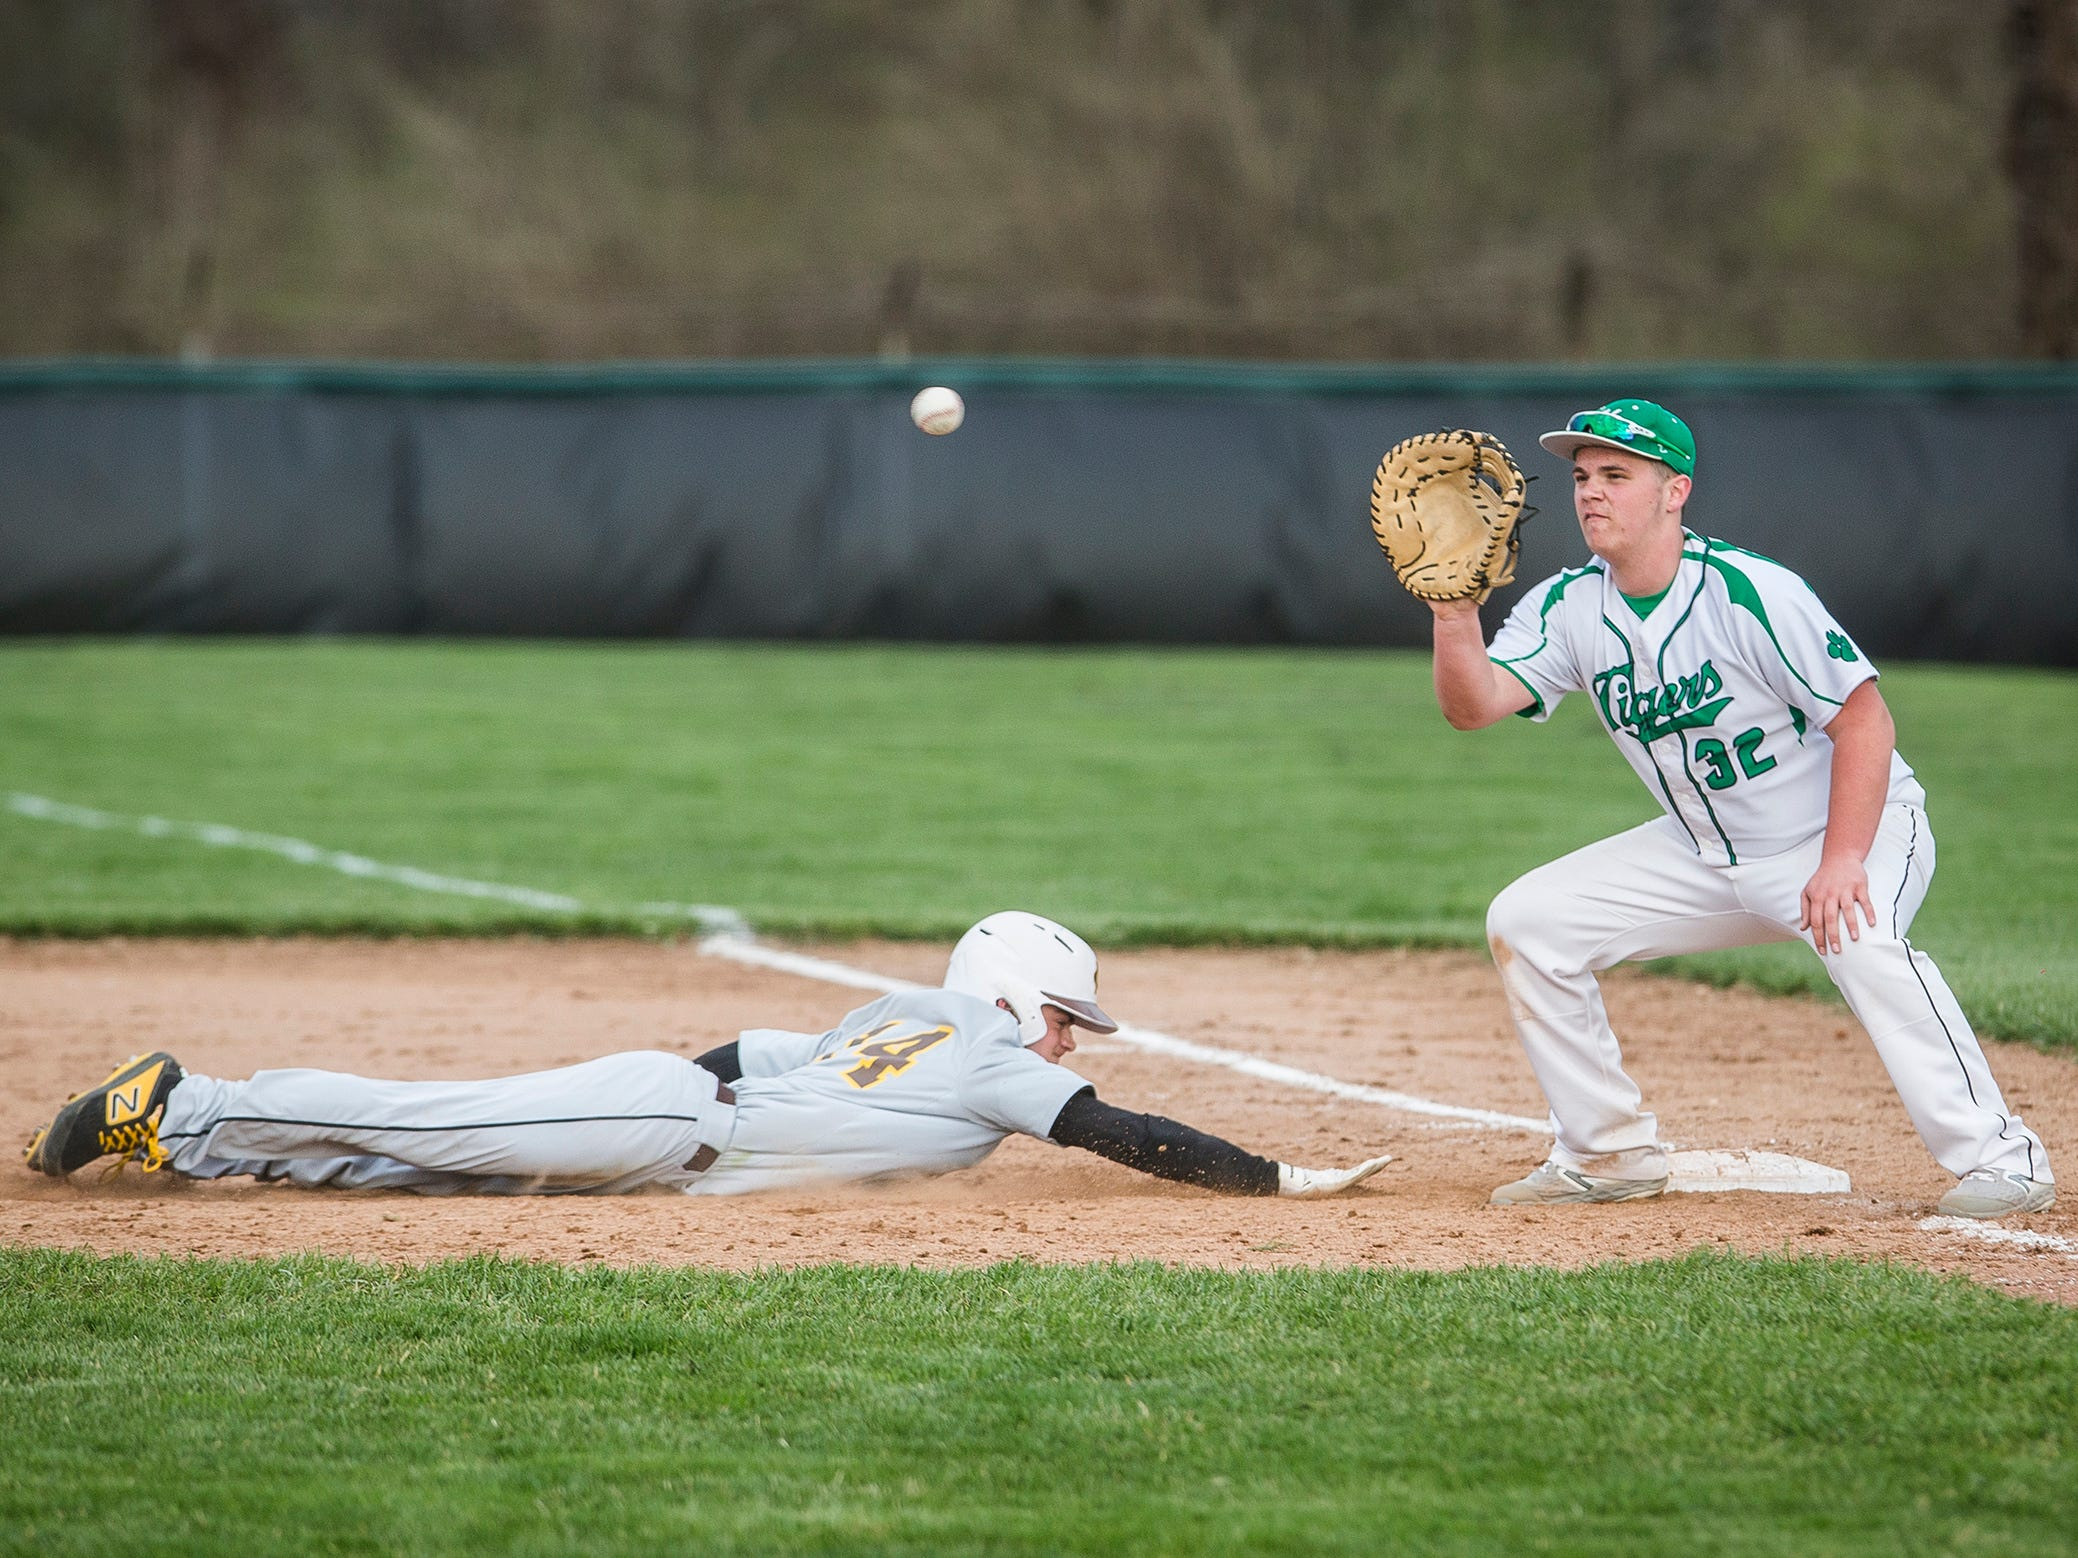 Yorktown's Billy McNamara attempts an out at first against Monroe Central during their game at Yorktown High School Wednesday, April 10, 2019.